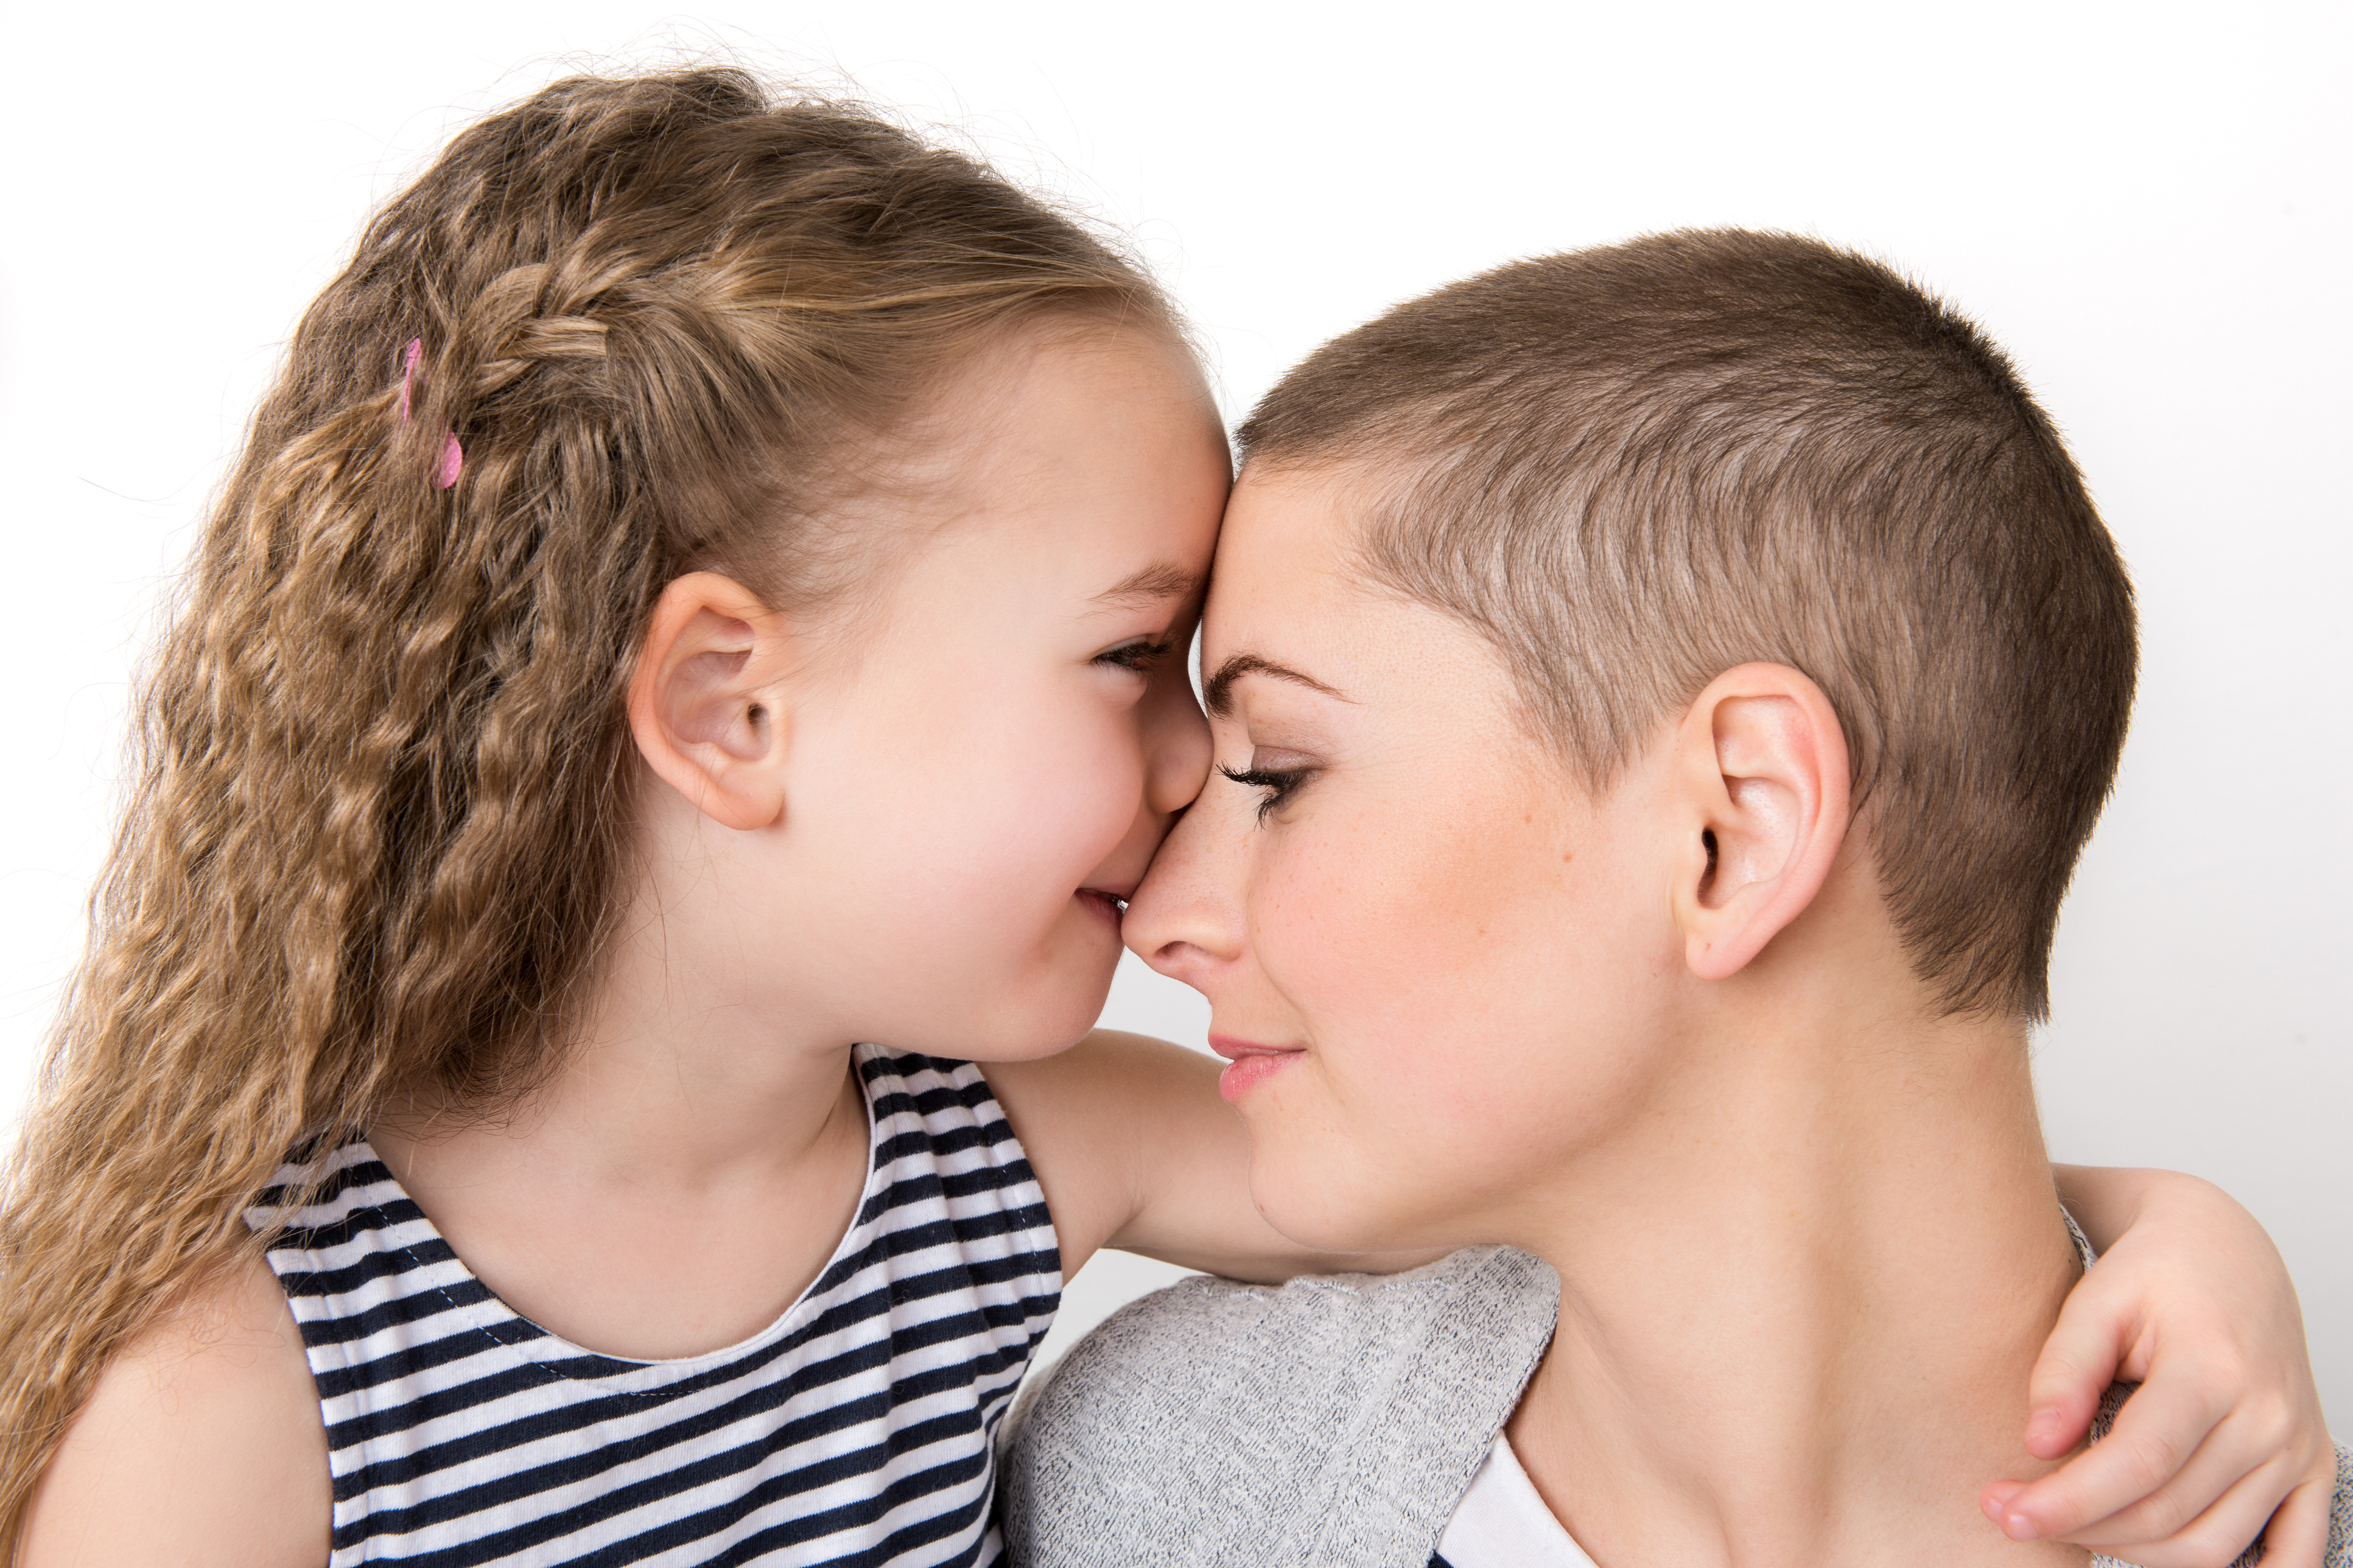 Cute preschool age girl with her mother, young cancer patient in remission. Cancer patient and family support concept.